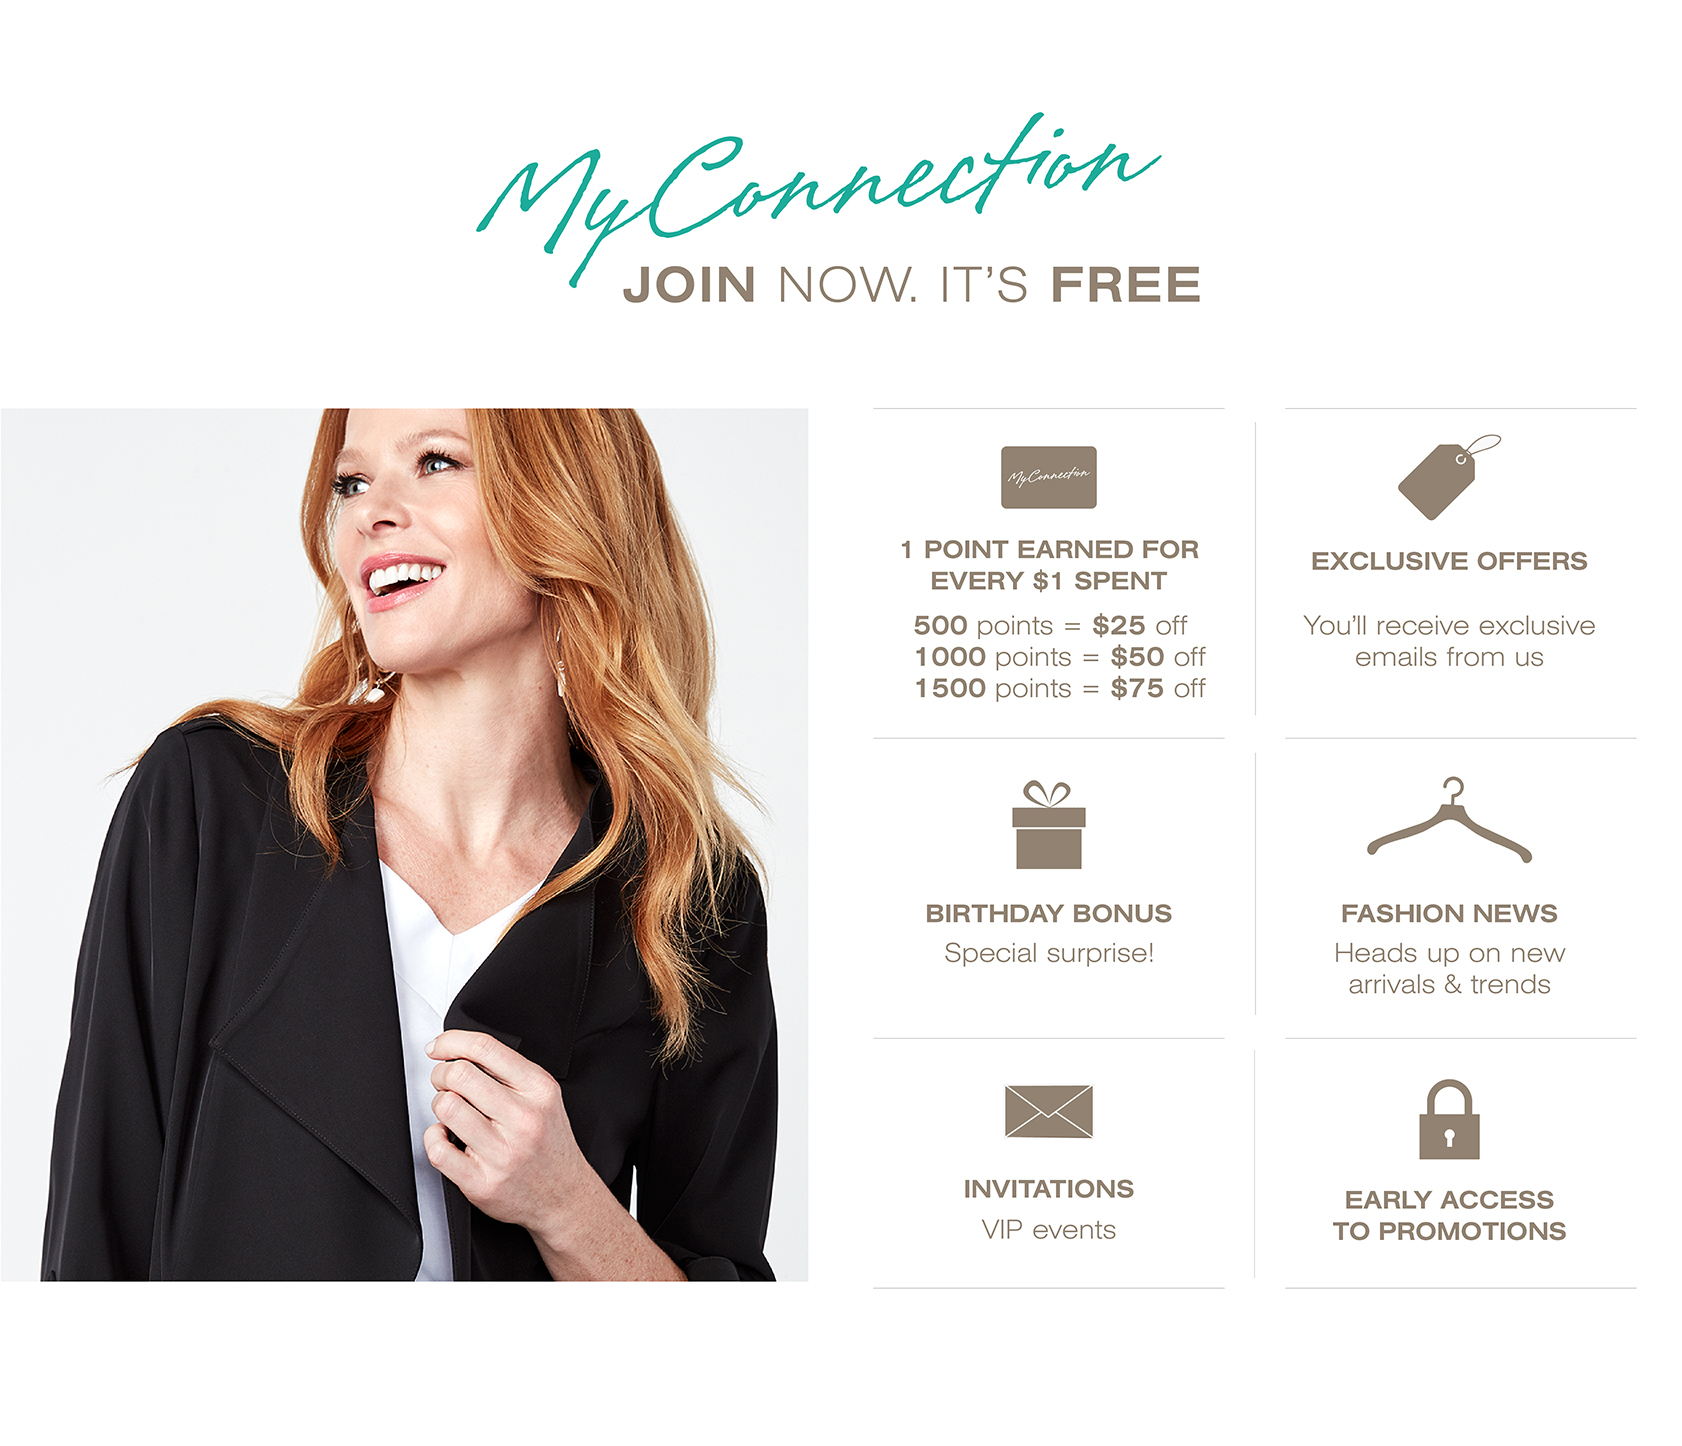 My Connection, join now. It's free. 1 point earned for every $1 spent. 500 points=$25 off. 1000 points = $50 off. 1500 points= $75 off. Exclusive offers. You'll receive exclusive emails from us. Birthday bonus, special surprise. Fashion news, heads up on new arrivals and trends. Invitations to VIP events. Early access to promotions.